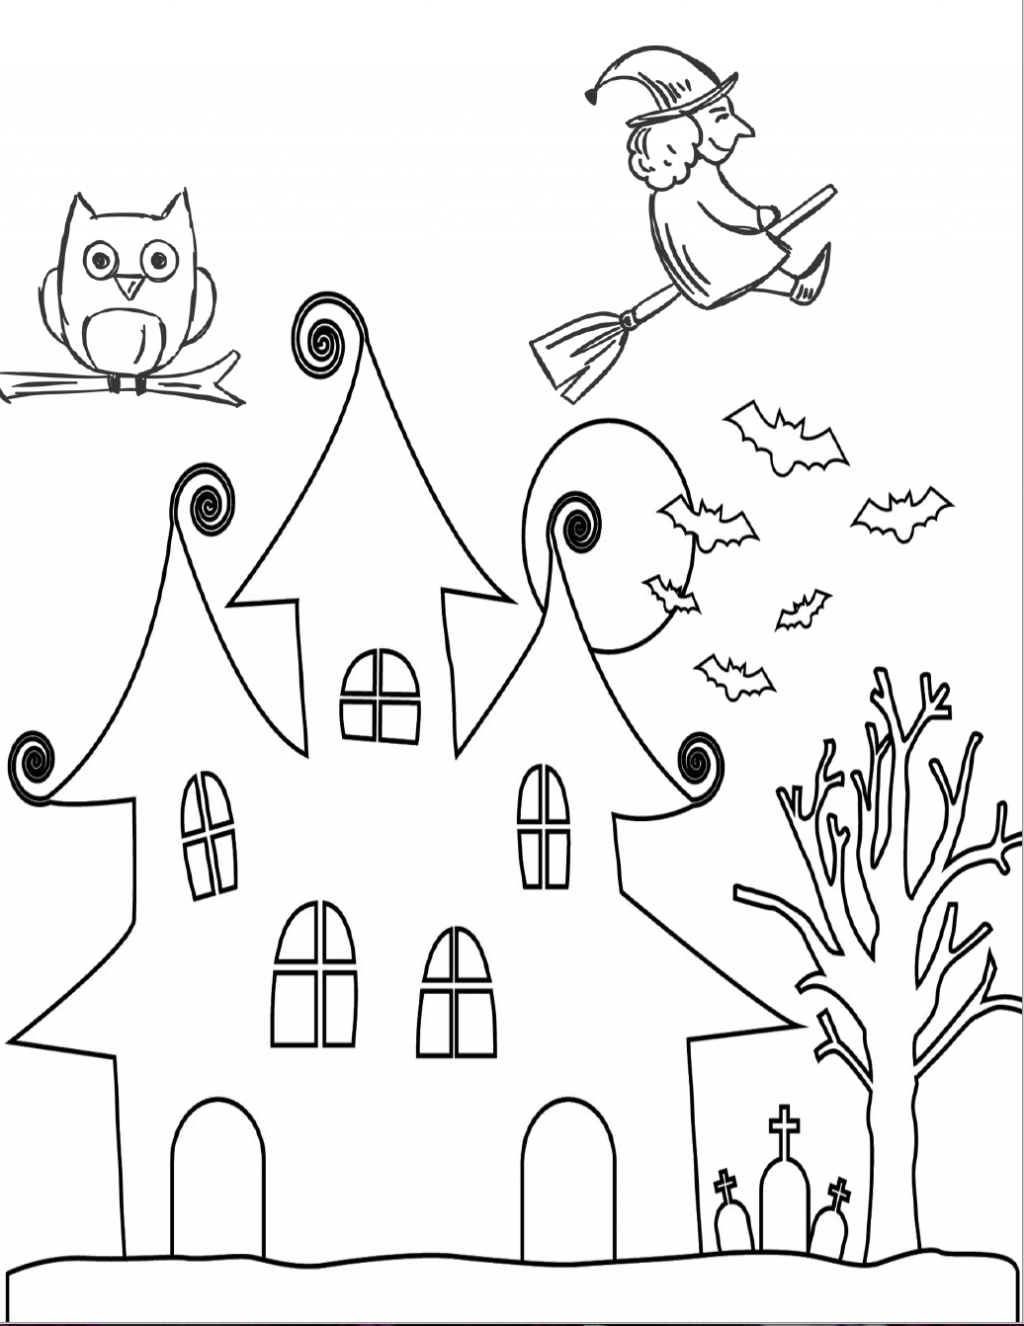 Free Printable Halloween Coloring Page Coloring Page Halloween Coloring Page2 Png Free Printable Pages